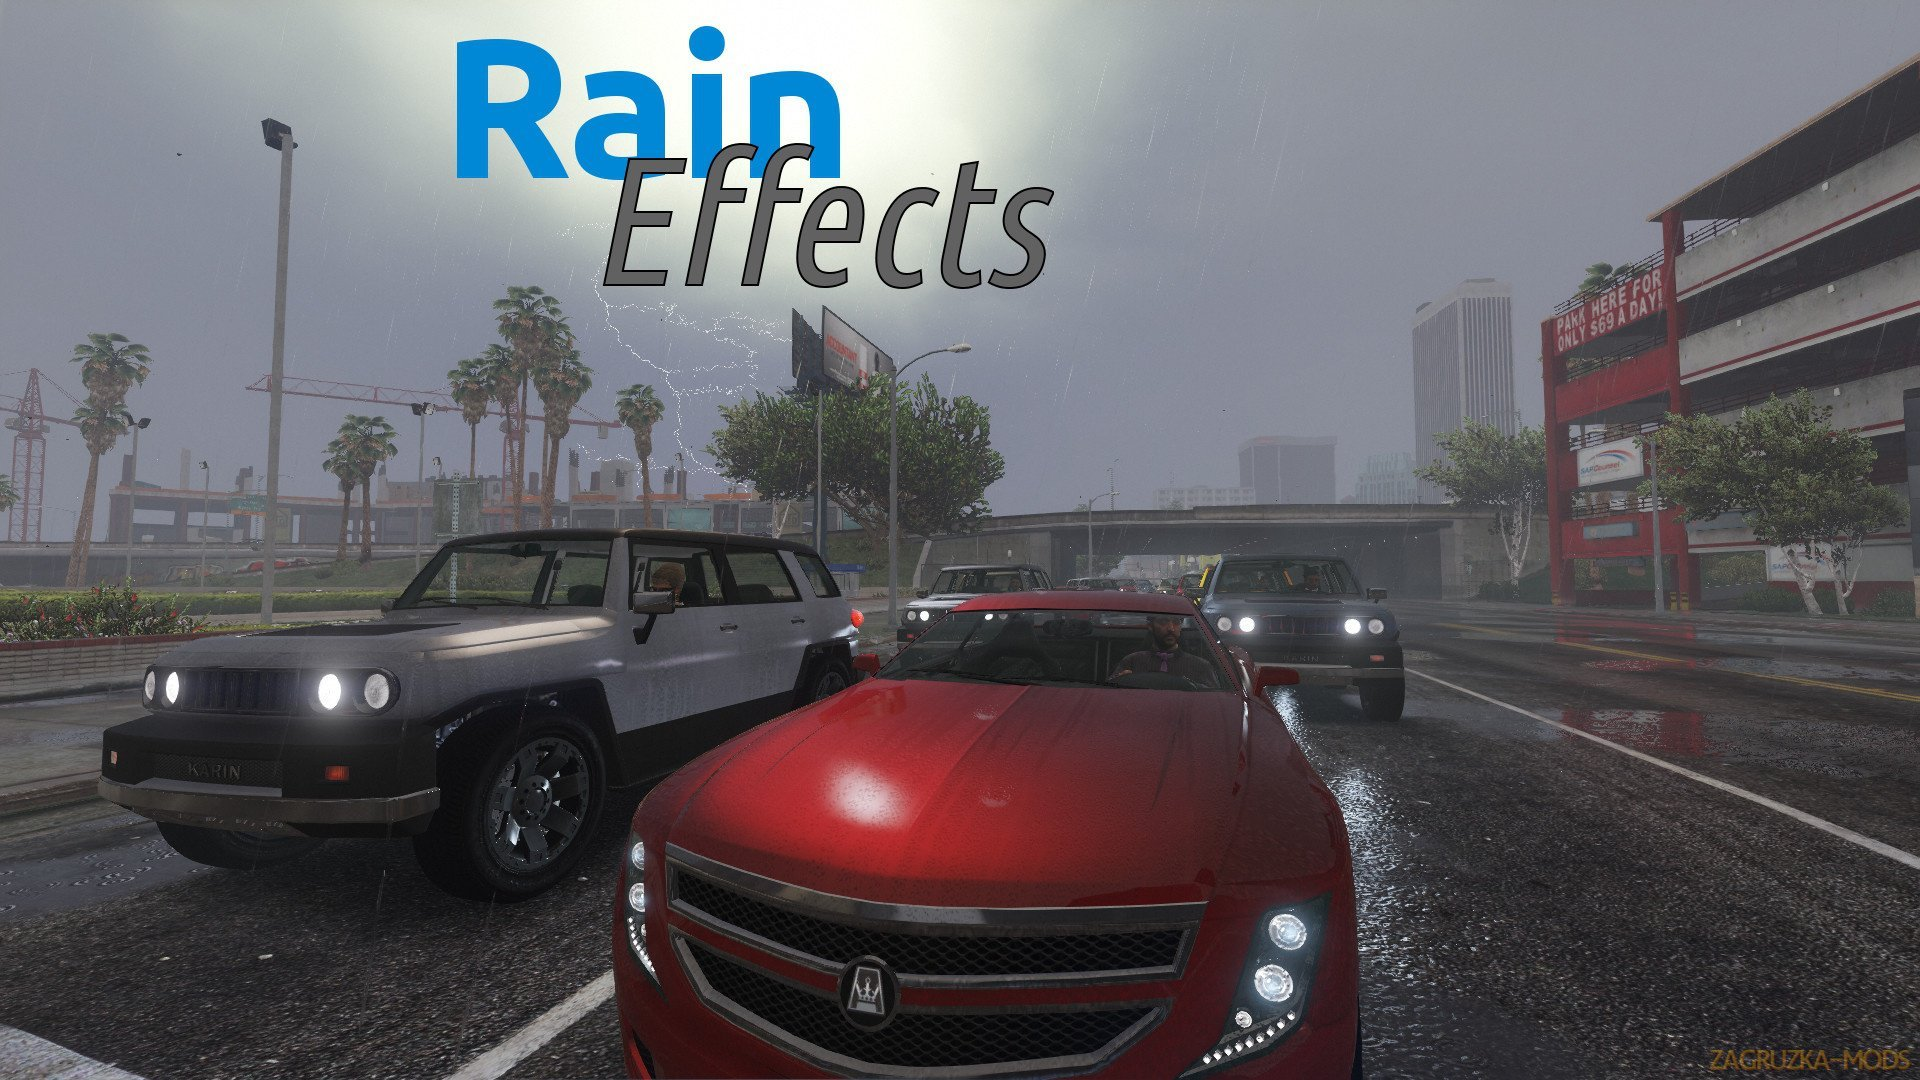 Rain Effects - Enhancement Script v1.5 for GTA 5